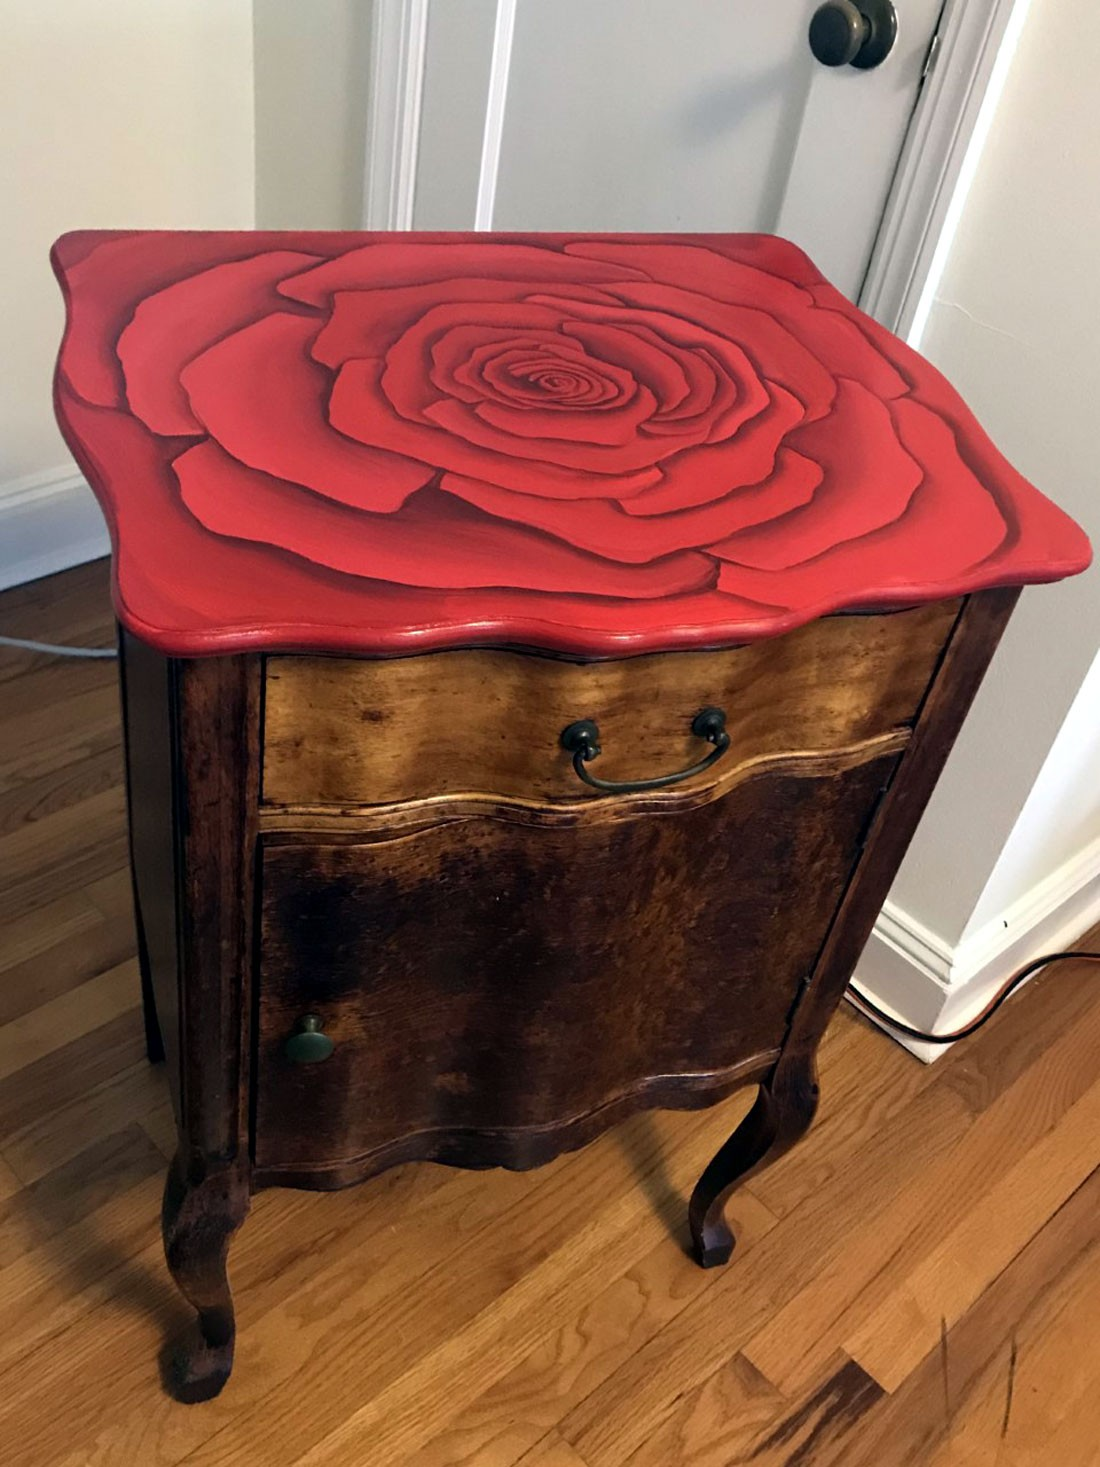 Night Stand - Rose Floral Design